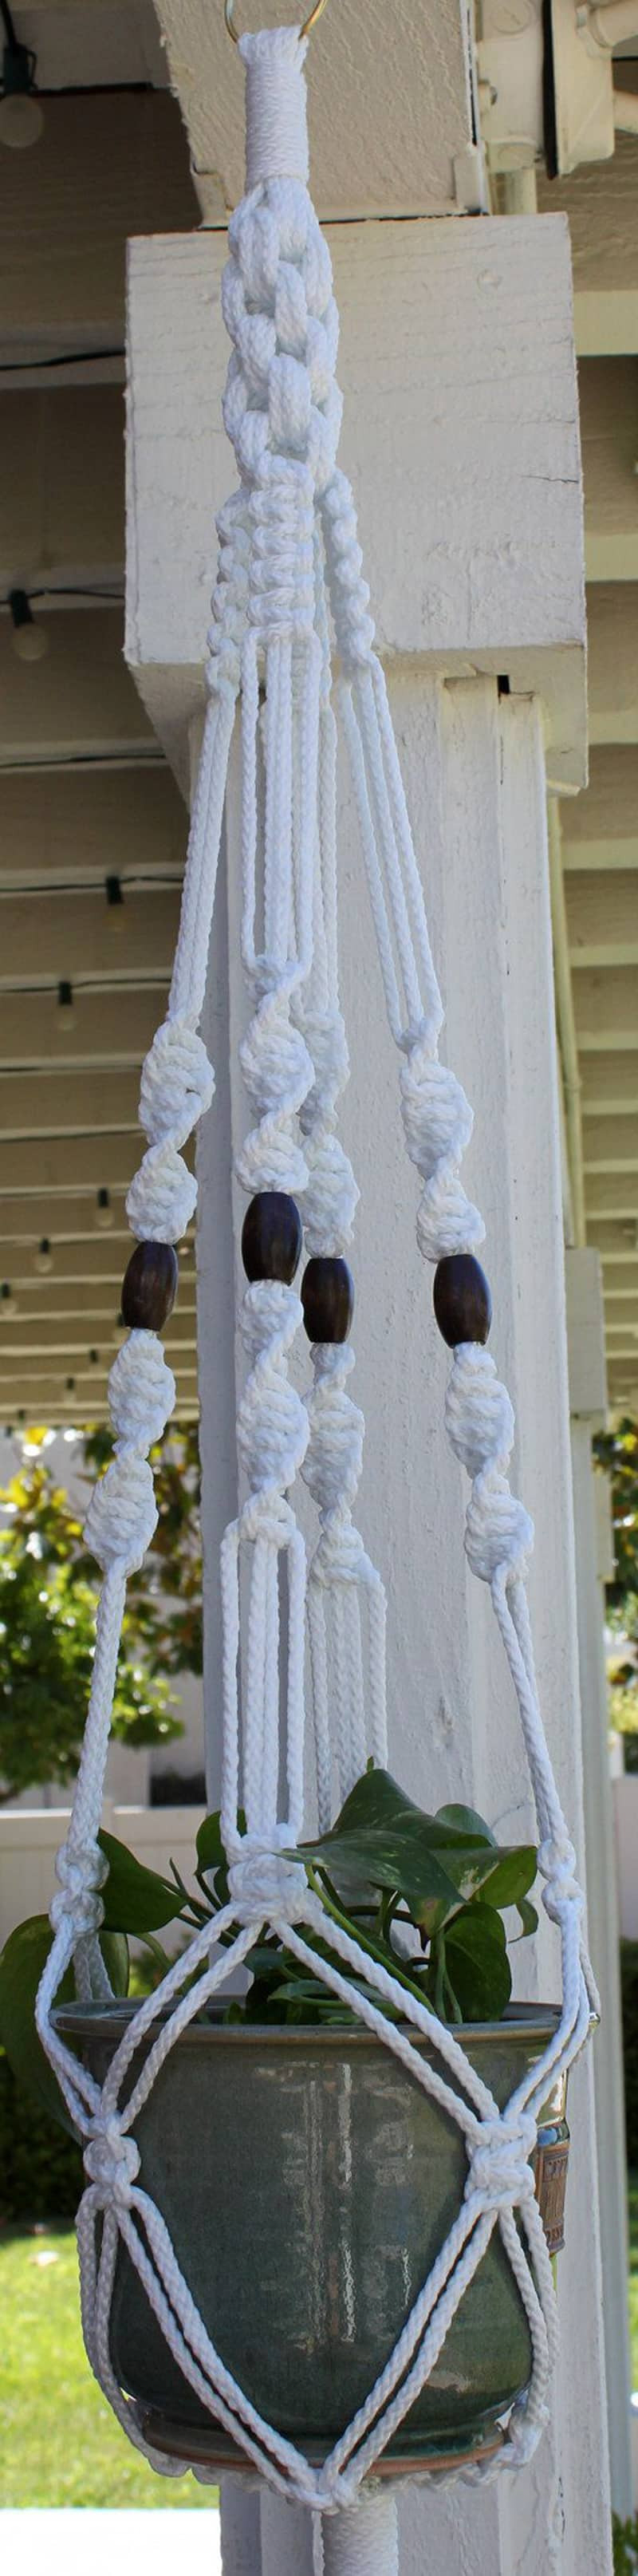 Macrame Plant Hanger Unique Macrame Plant Hanger Patterns to Embellish Any Rustic or Of Attractive 42 Pics Macrame Plant Hanger